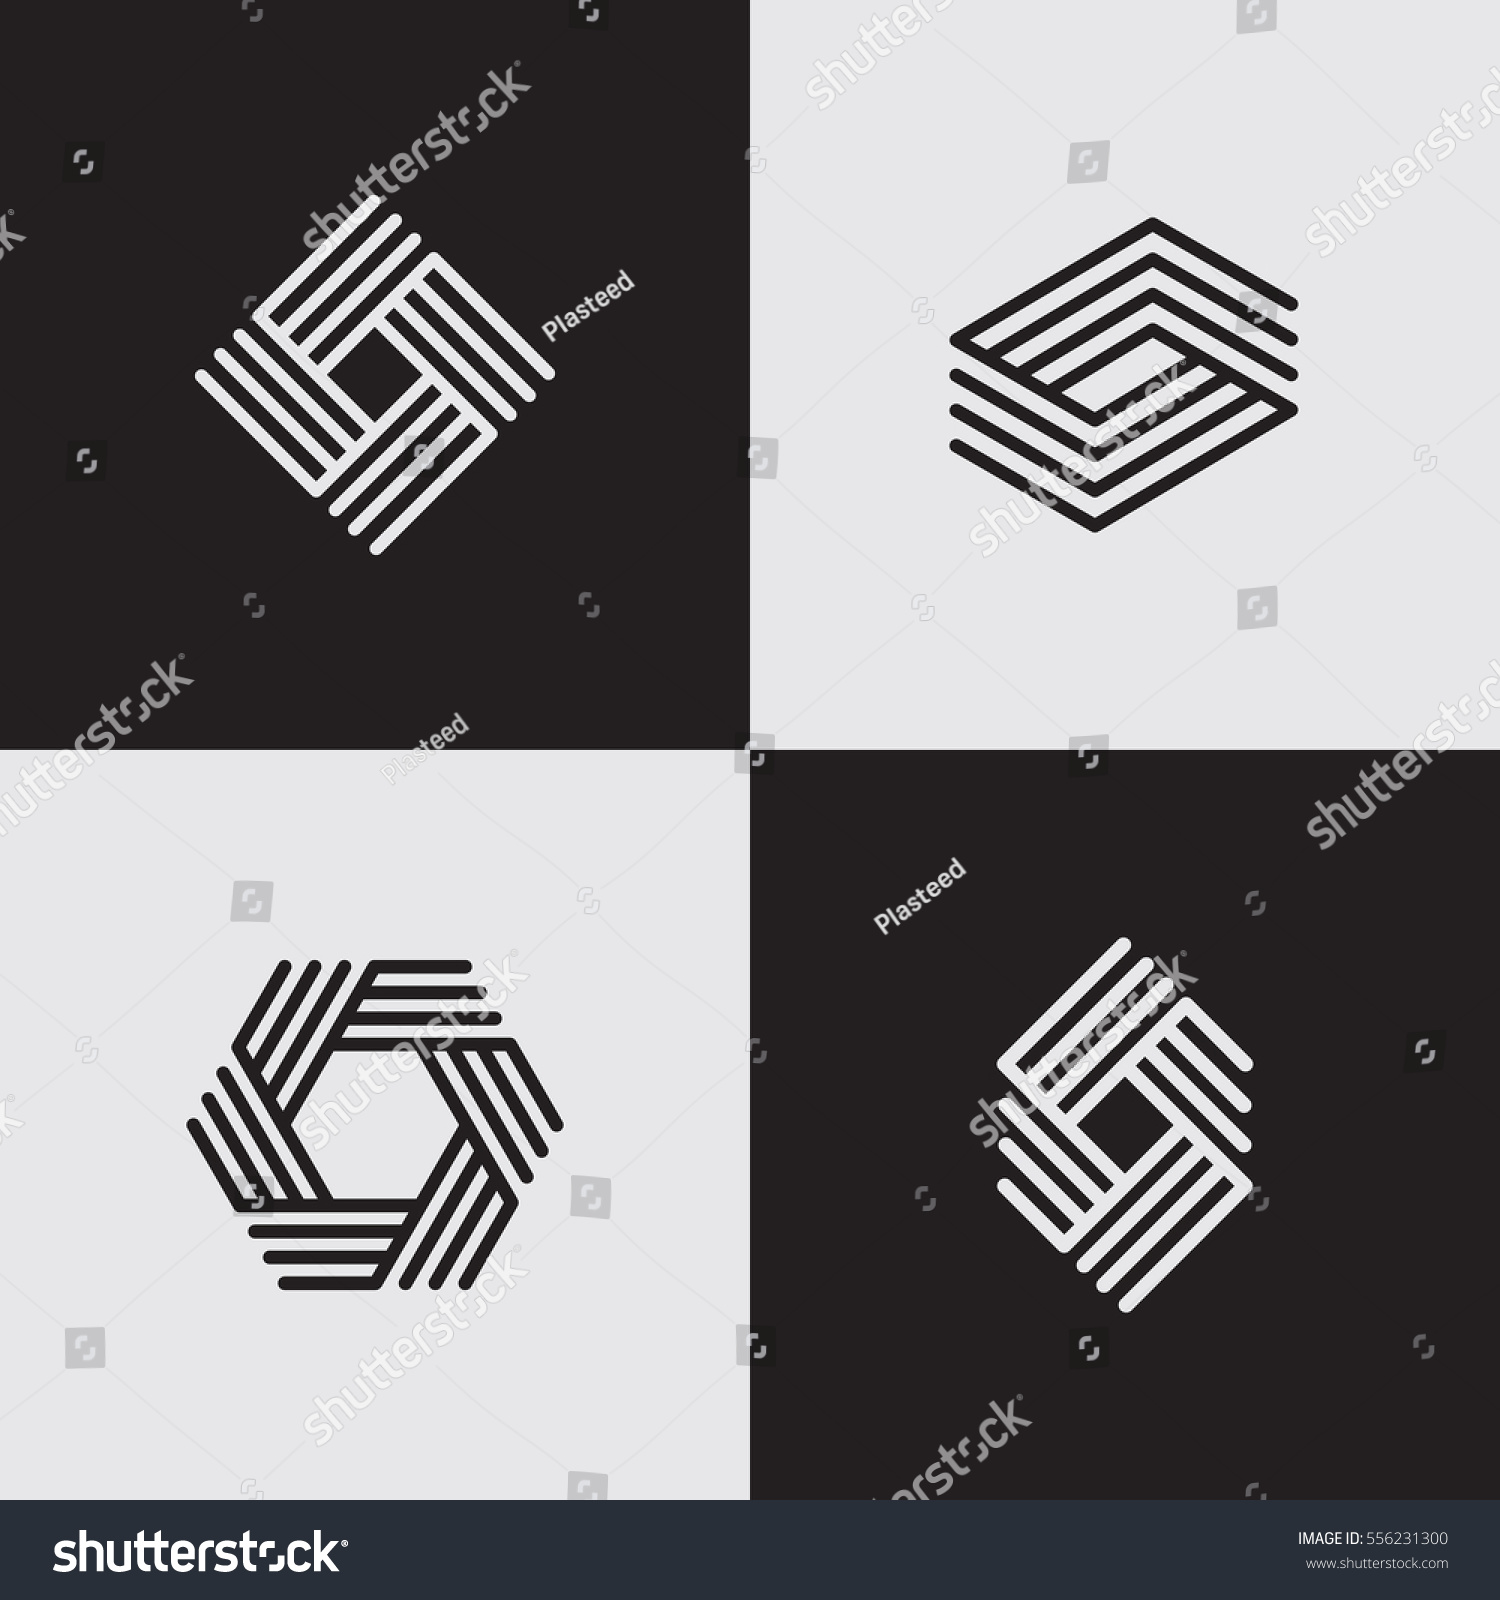 Modern Line Logos Creative Geometric Shapes Stock Vector